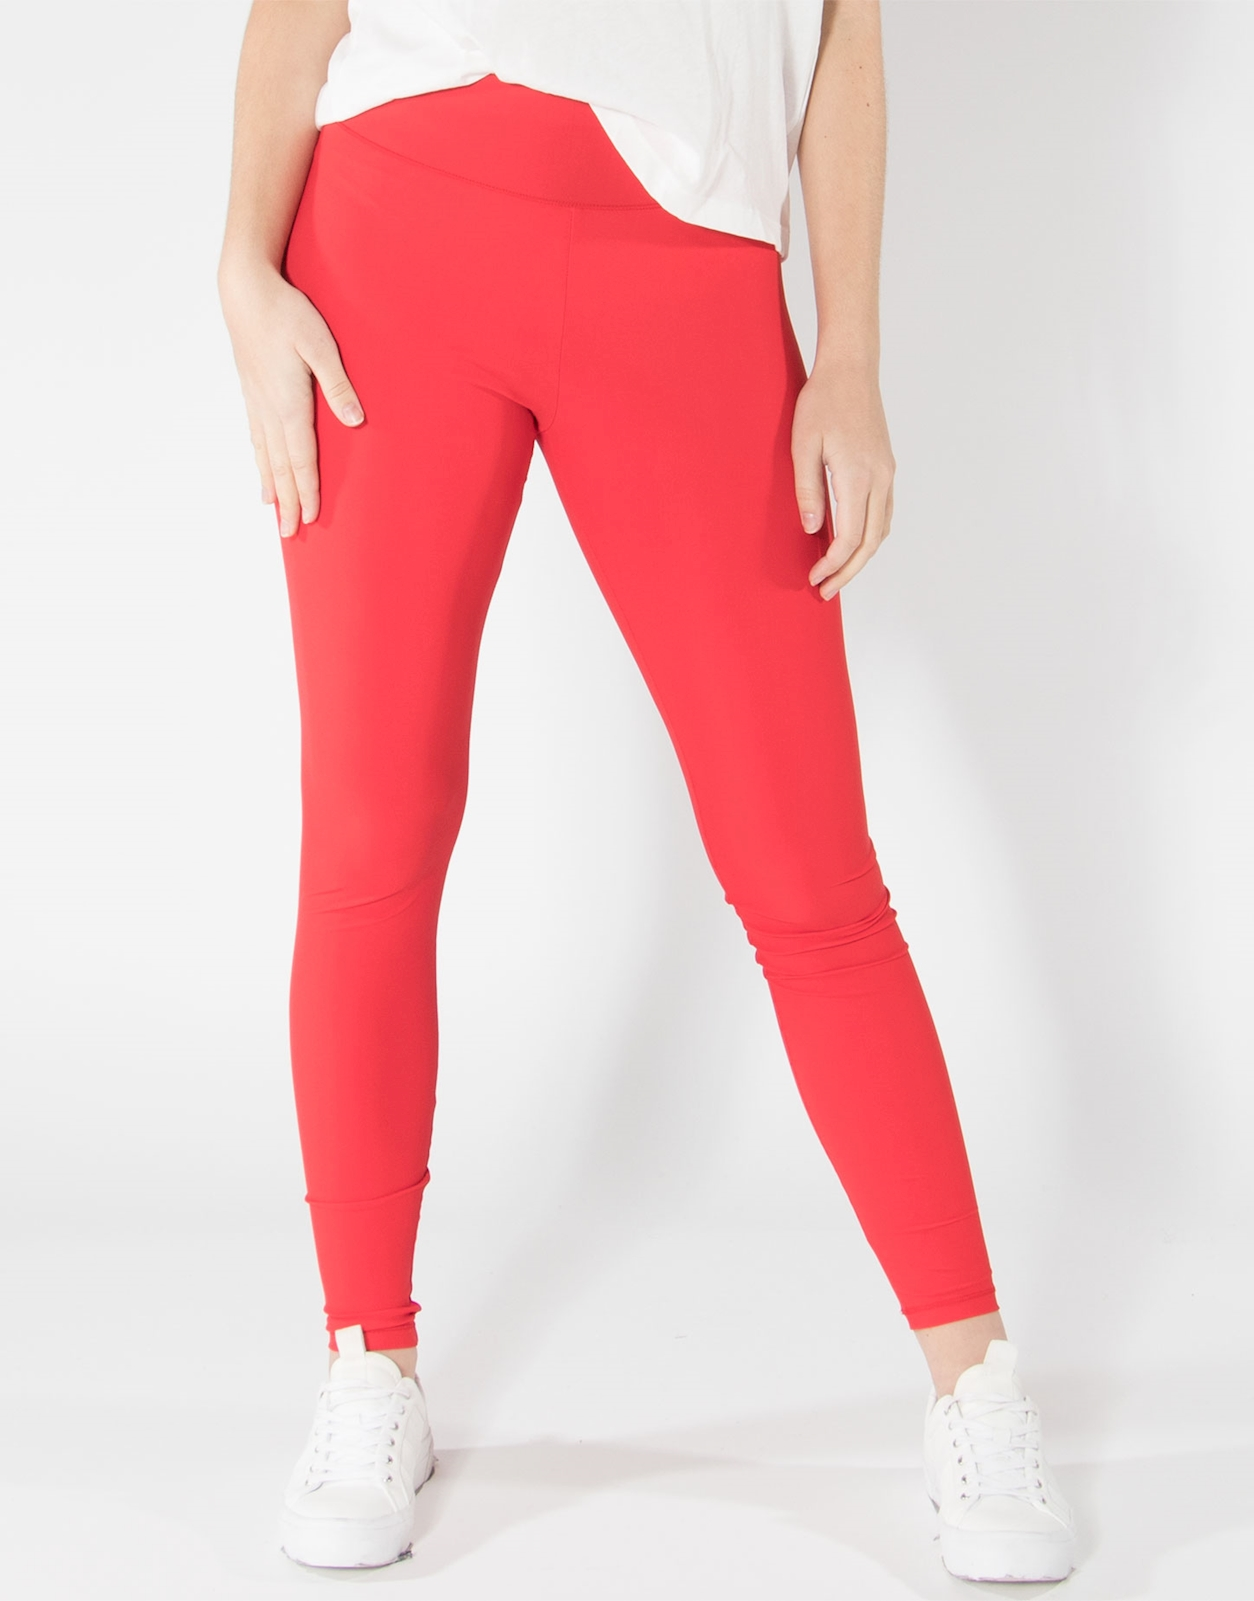 Moscow rode legging hibiscus